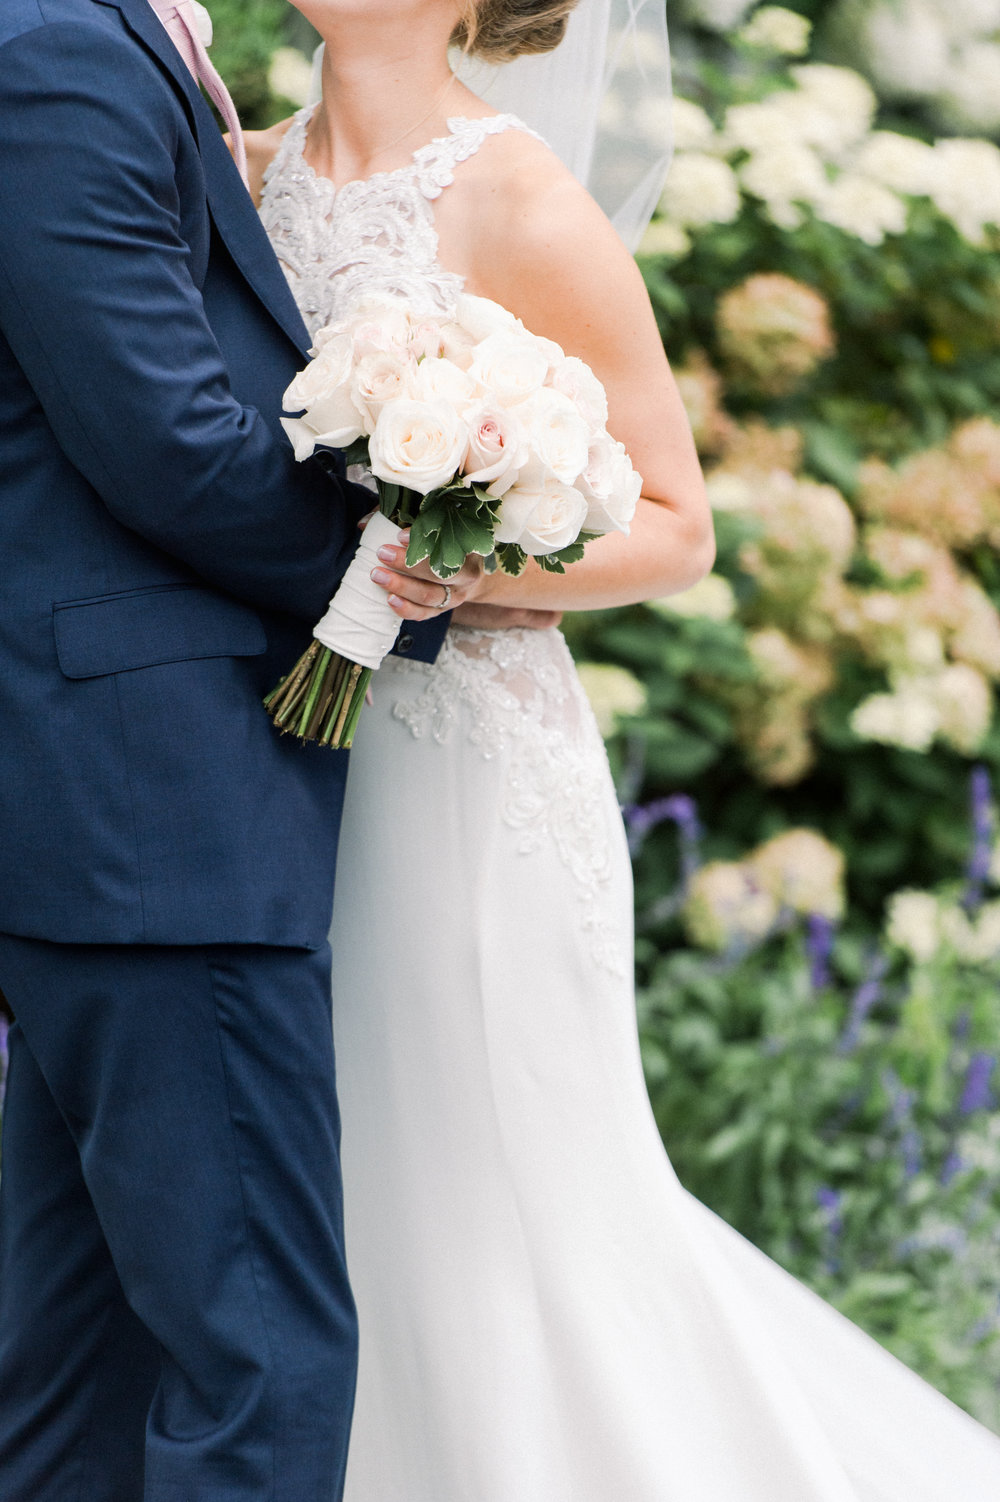 The Commons 1854 Topsfield MA wedding | Massachusetts wedding venue | Massachusetts wedding photography | couples portraits bride and groom | First look | pale blush pink bouquet